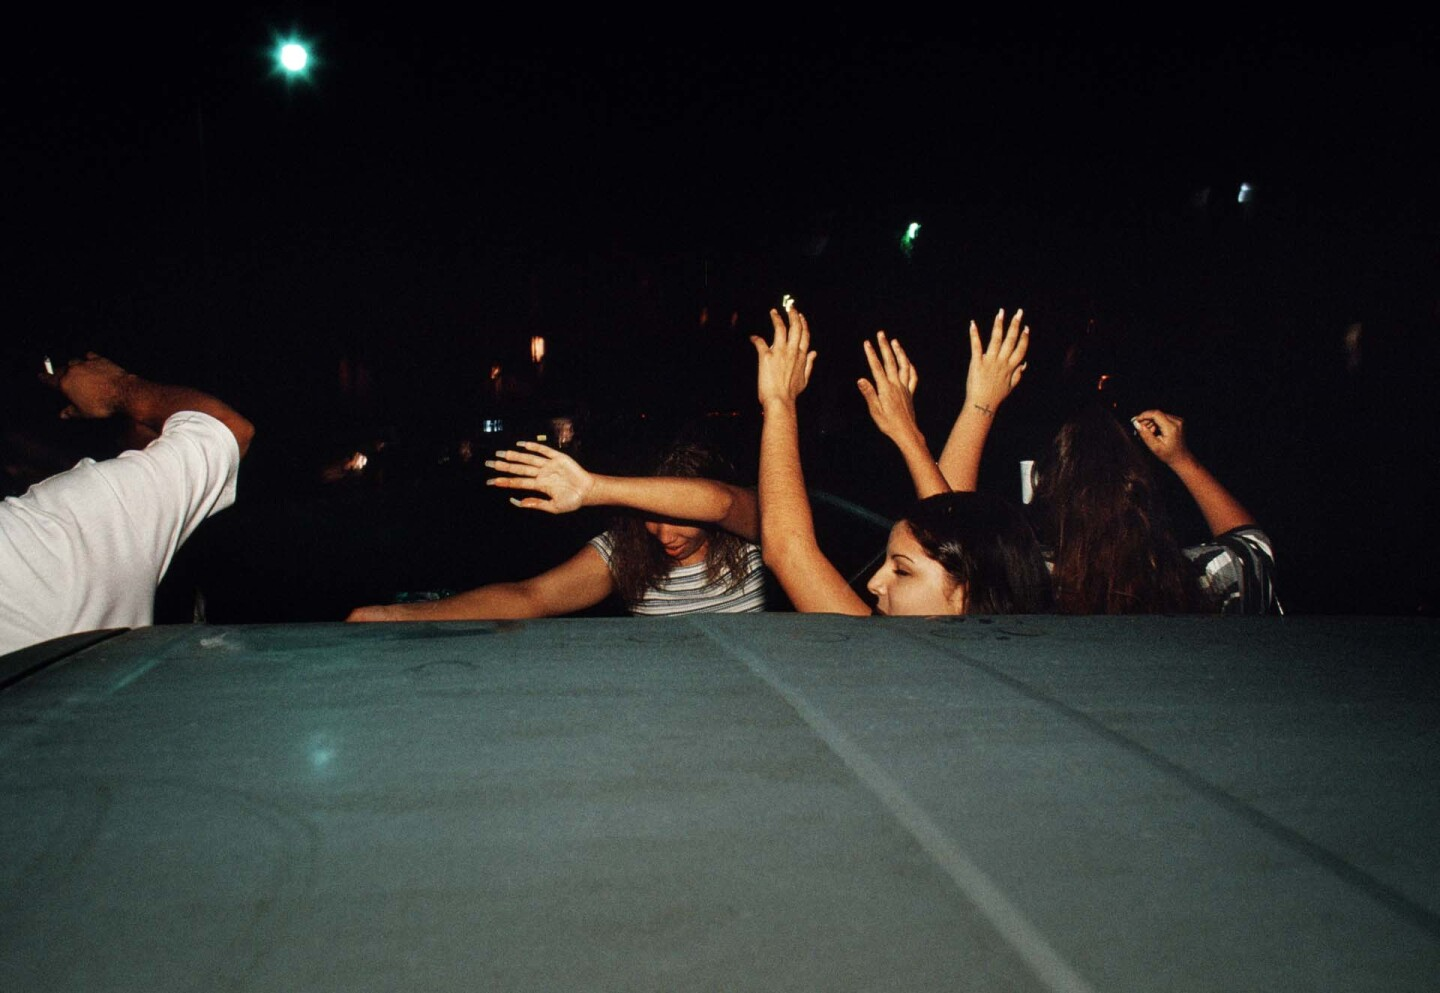 Young people in Pico-Union are photographed with their hands raised behind a car at night.